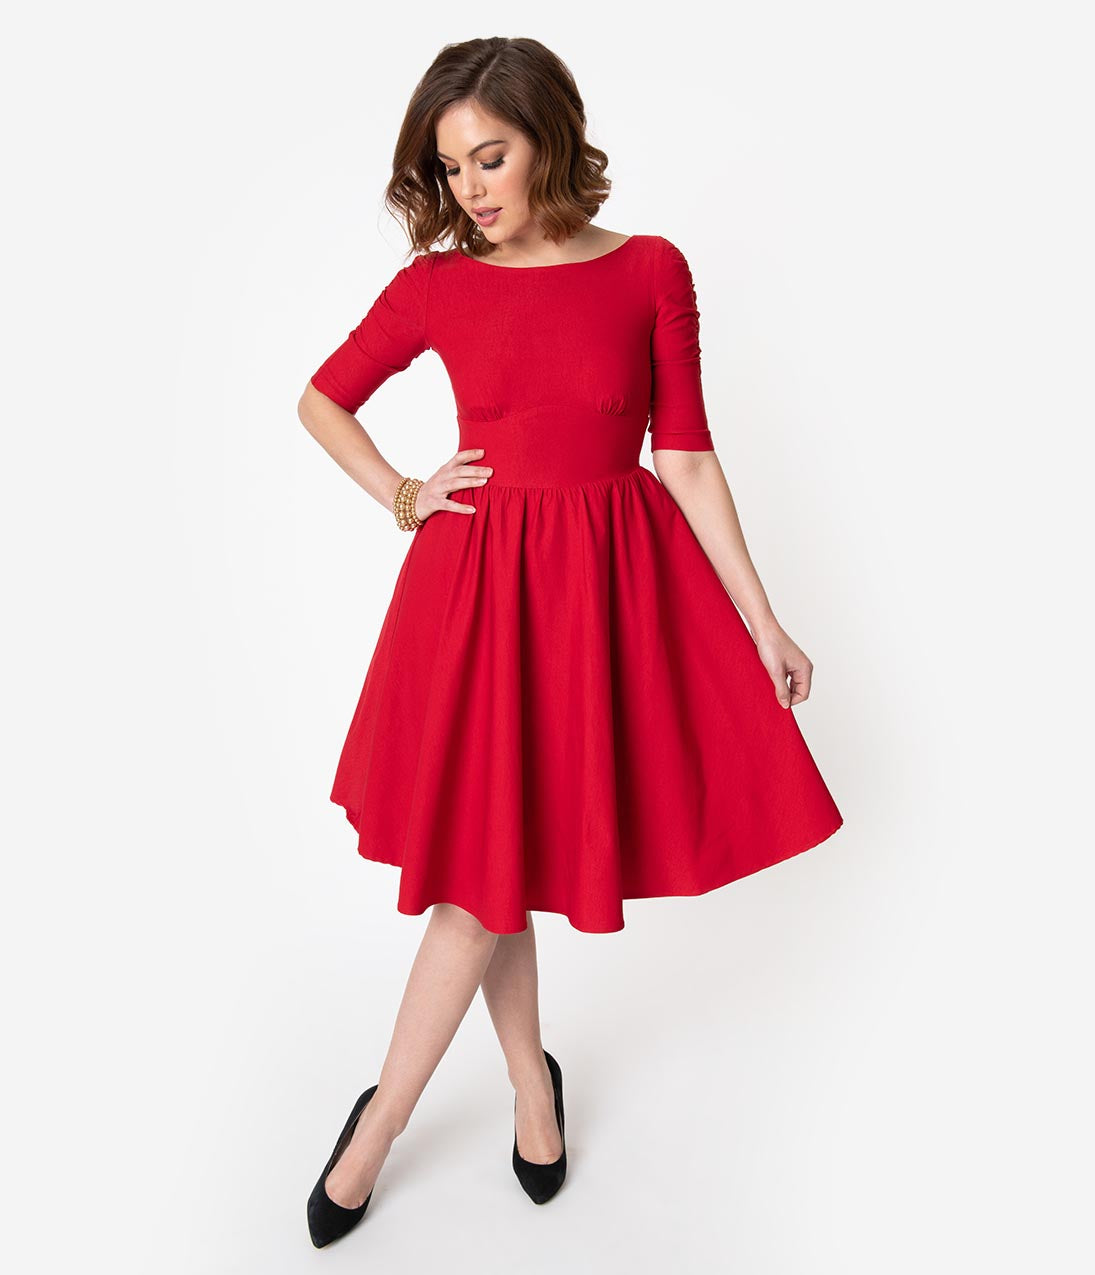 1950s Dresses, 50s Dresses | 1950s Style Dresses Stop Staring 1950S Style Red Stretch Sleeved October Swing Dress $178.00 AT vintagedancer.com